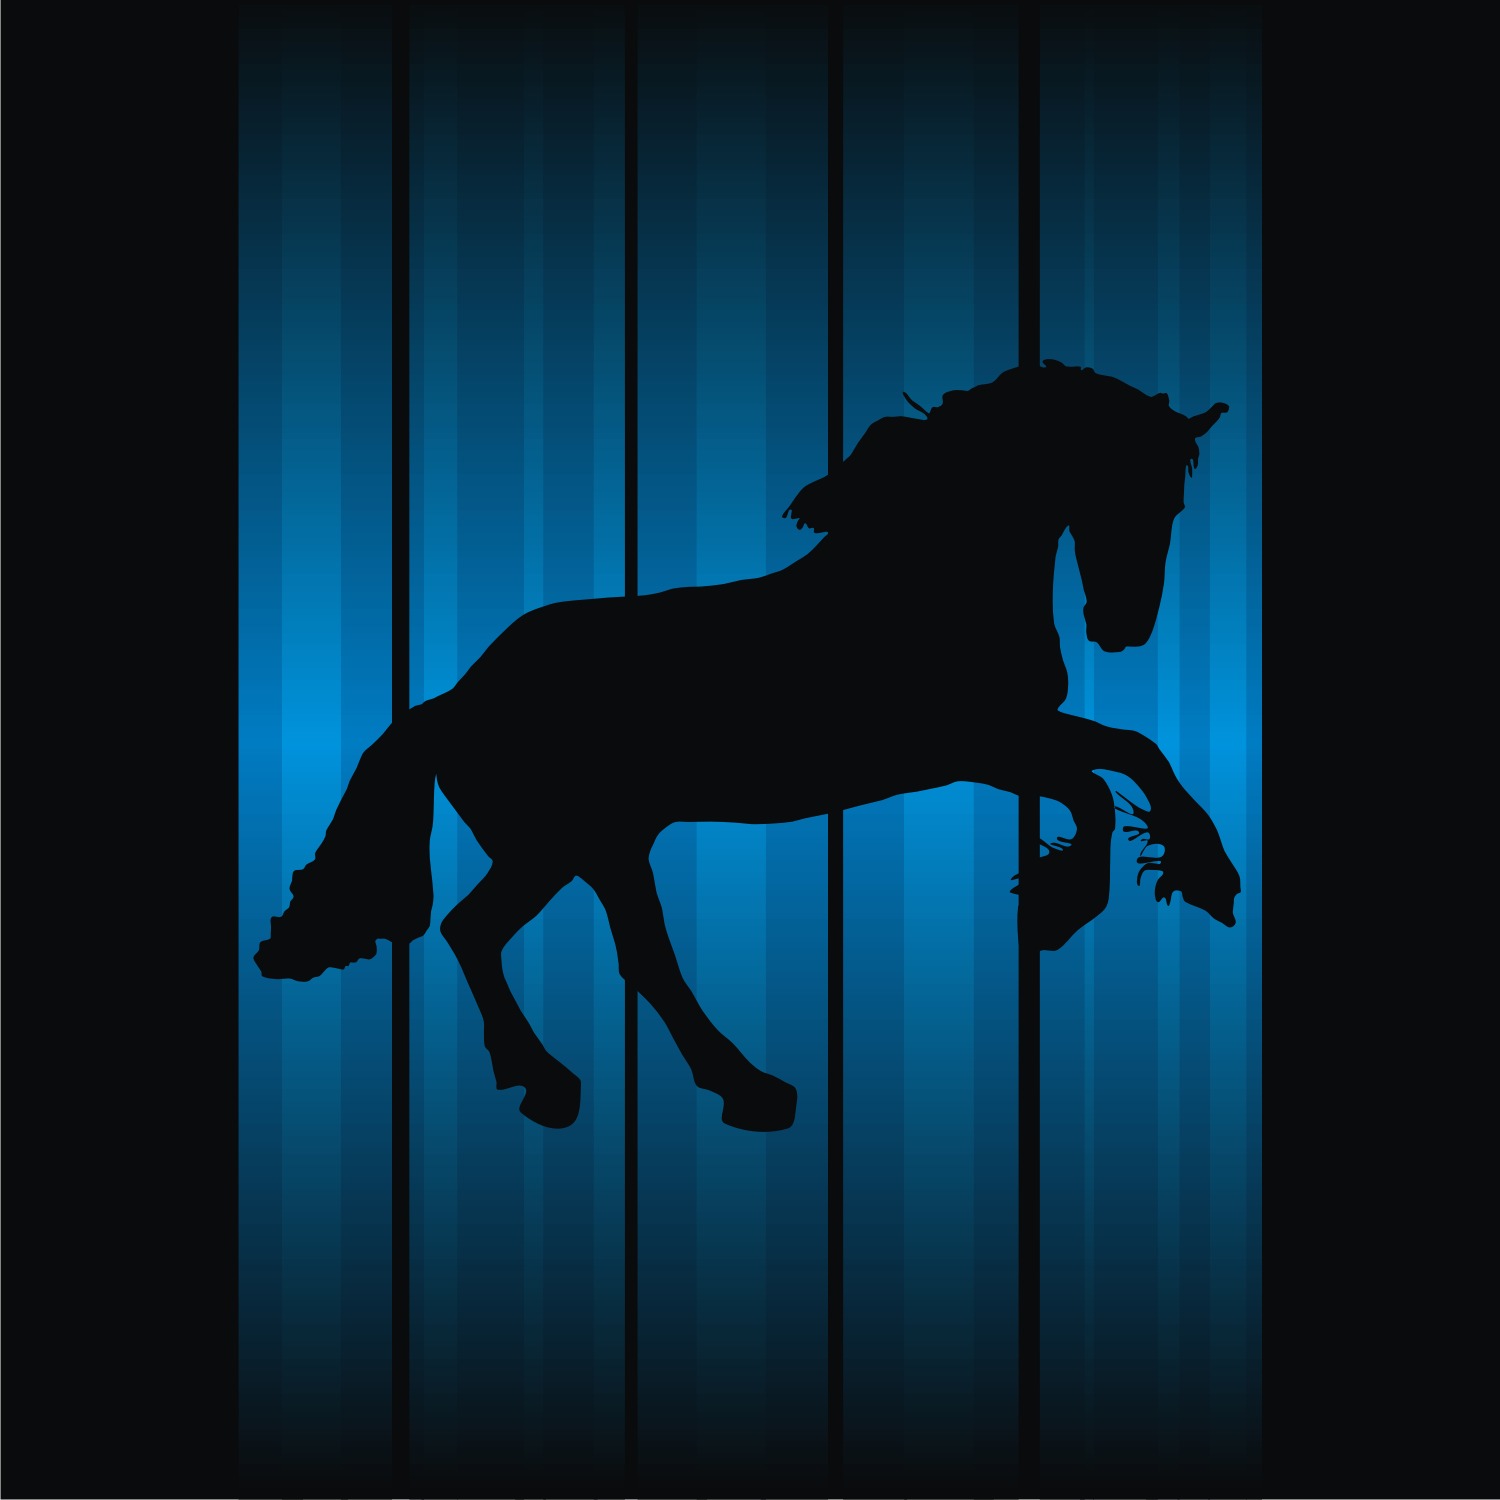 Horse silhouette on abstract background. Free vector illustration